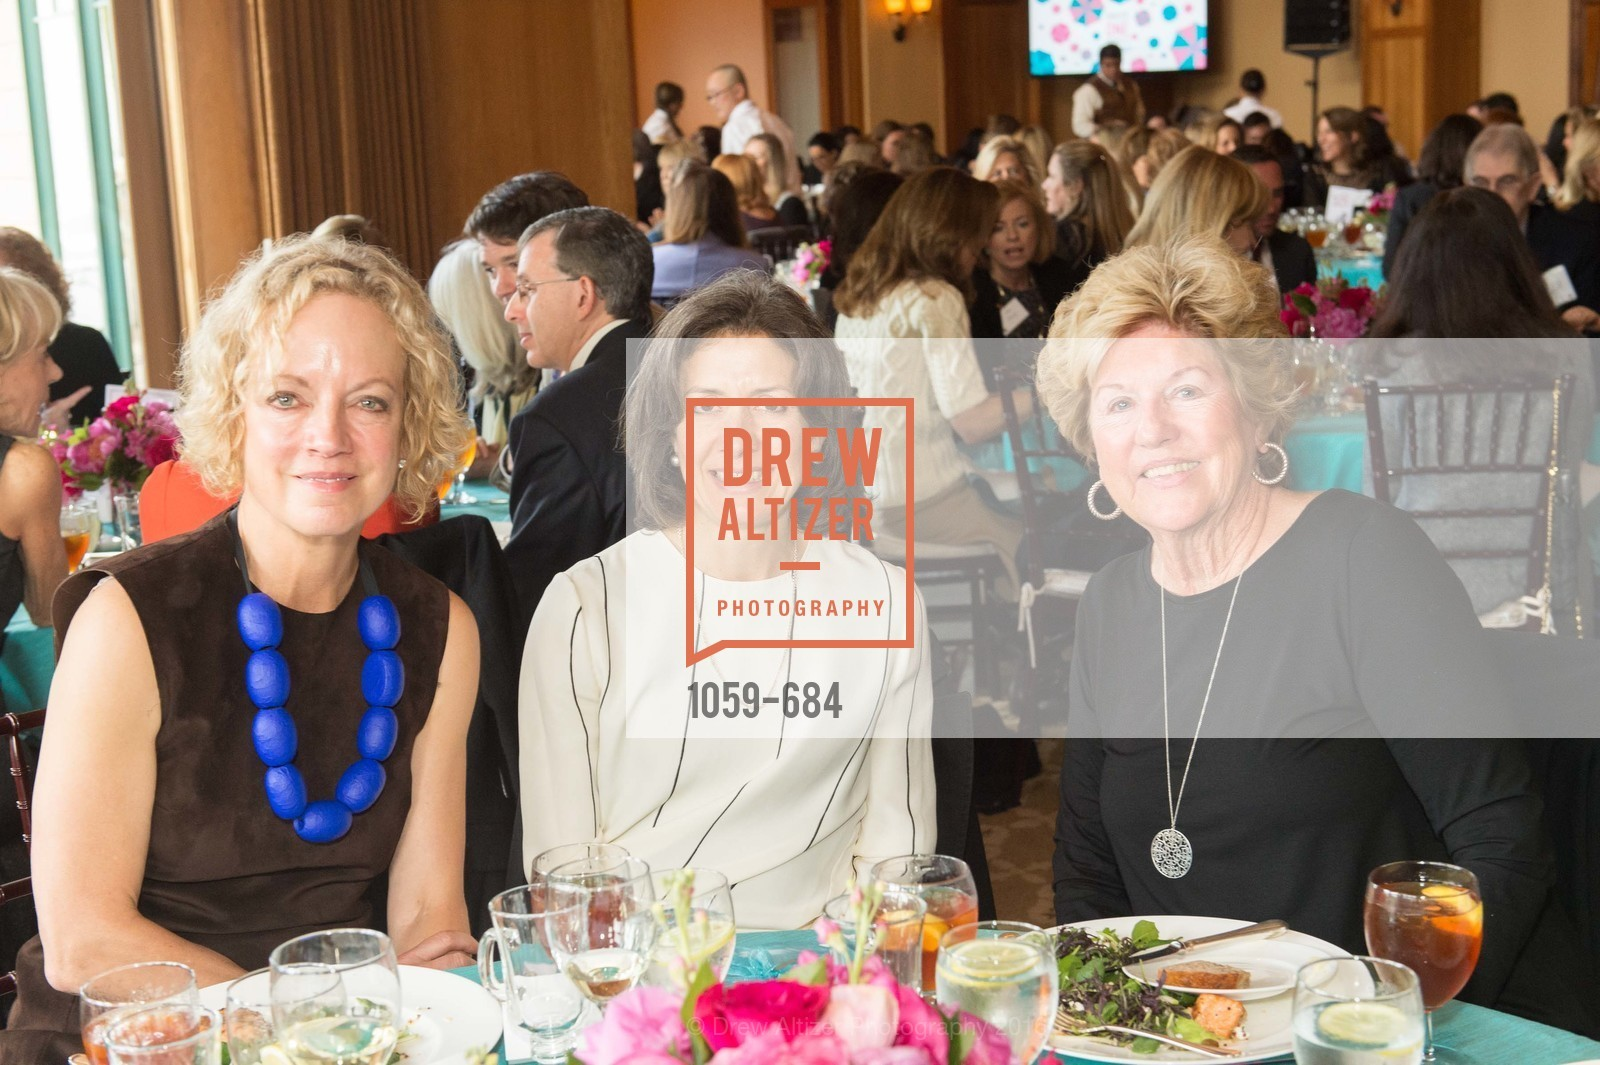 Sandi Thompson, Michele Schiele, Judy Marcus, Under One Umbrella, Sharon Heights Golf and Country Club, January 13th, 2016,Drew Altizer, Drew Altizer Photography, full-service agency, private events, San Francisco photographer, photographer california